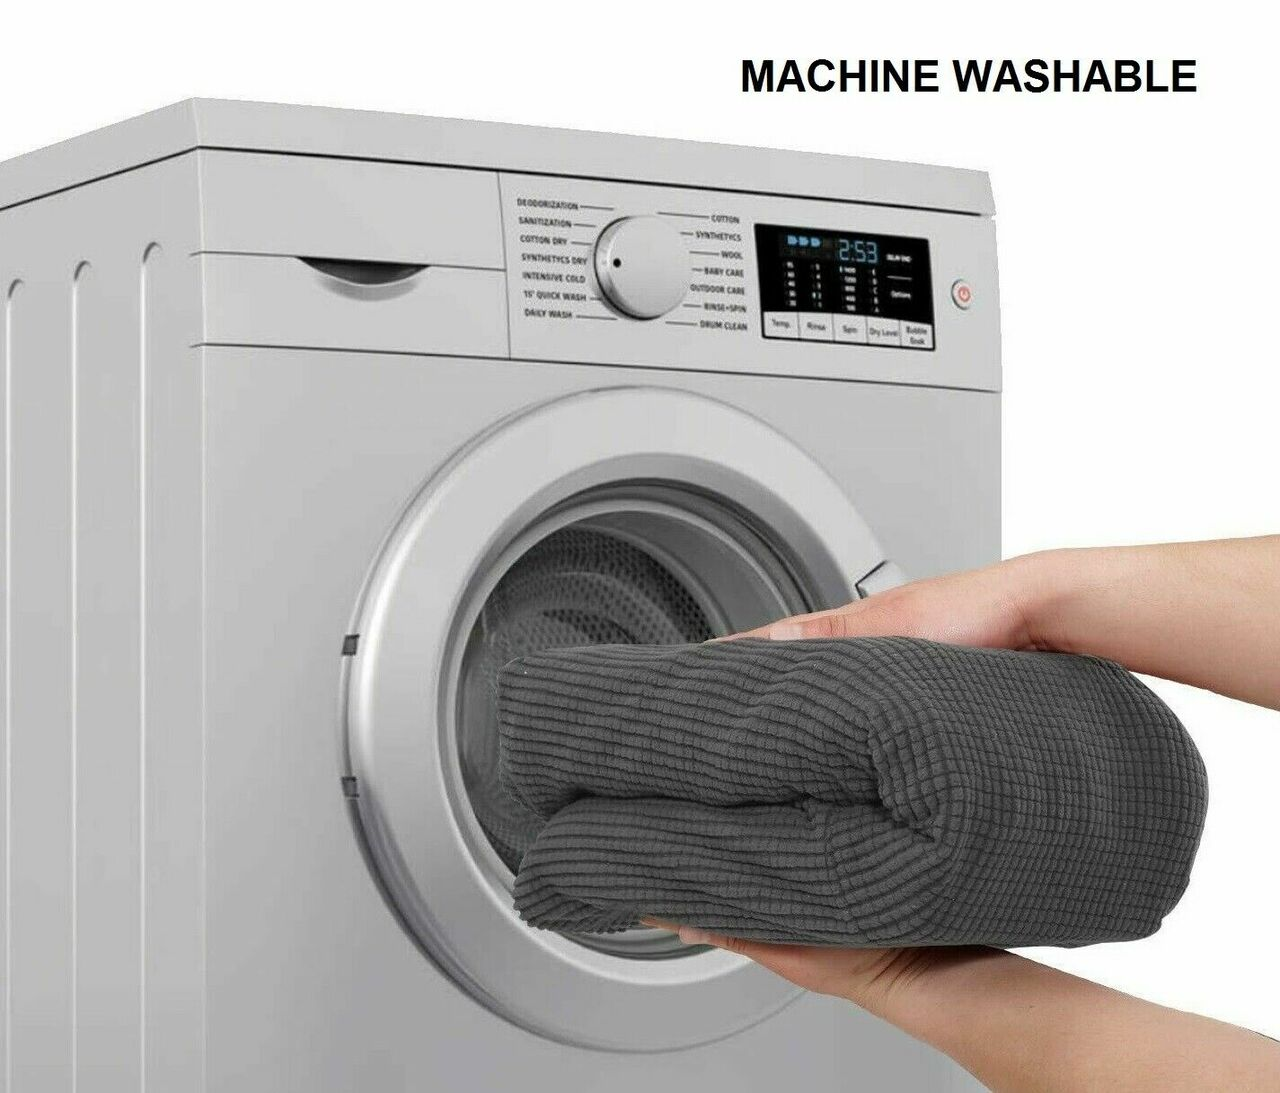 MACHINE WASAHBLE